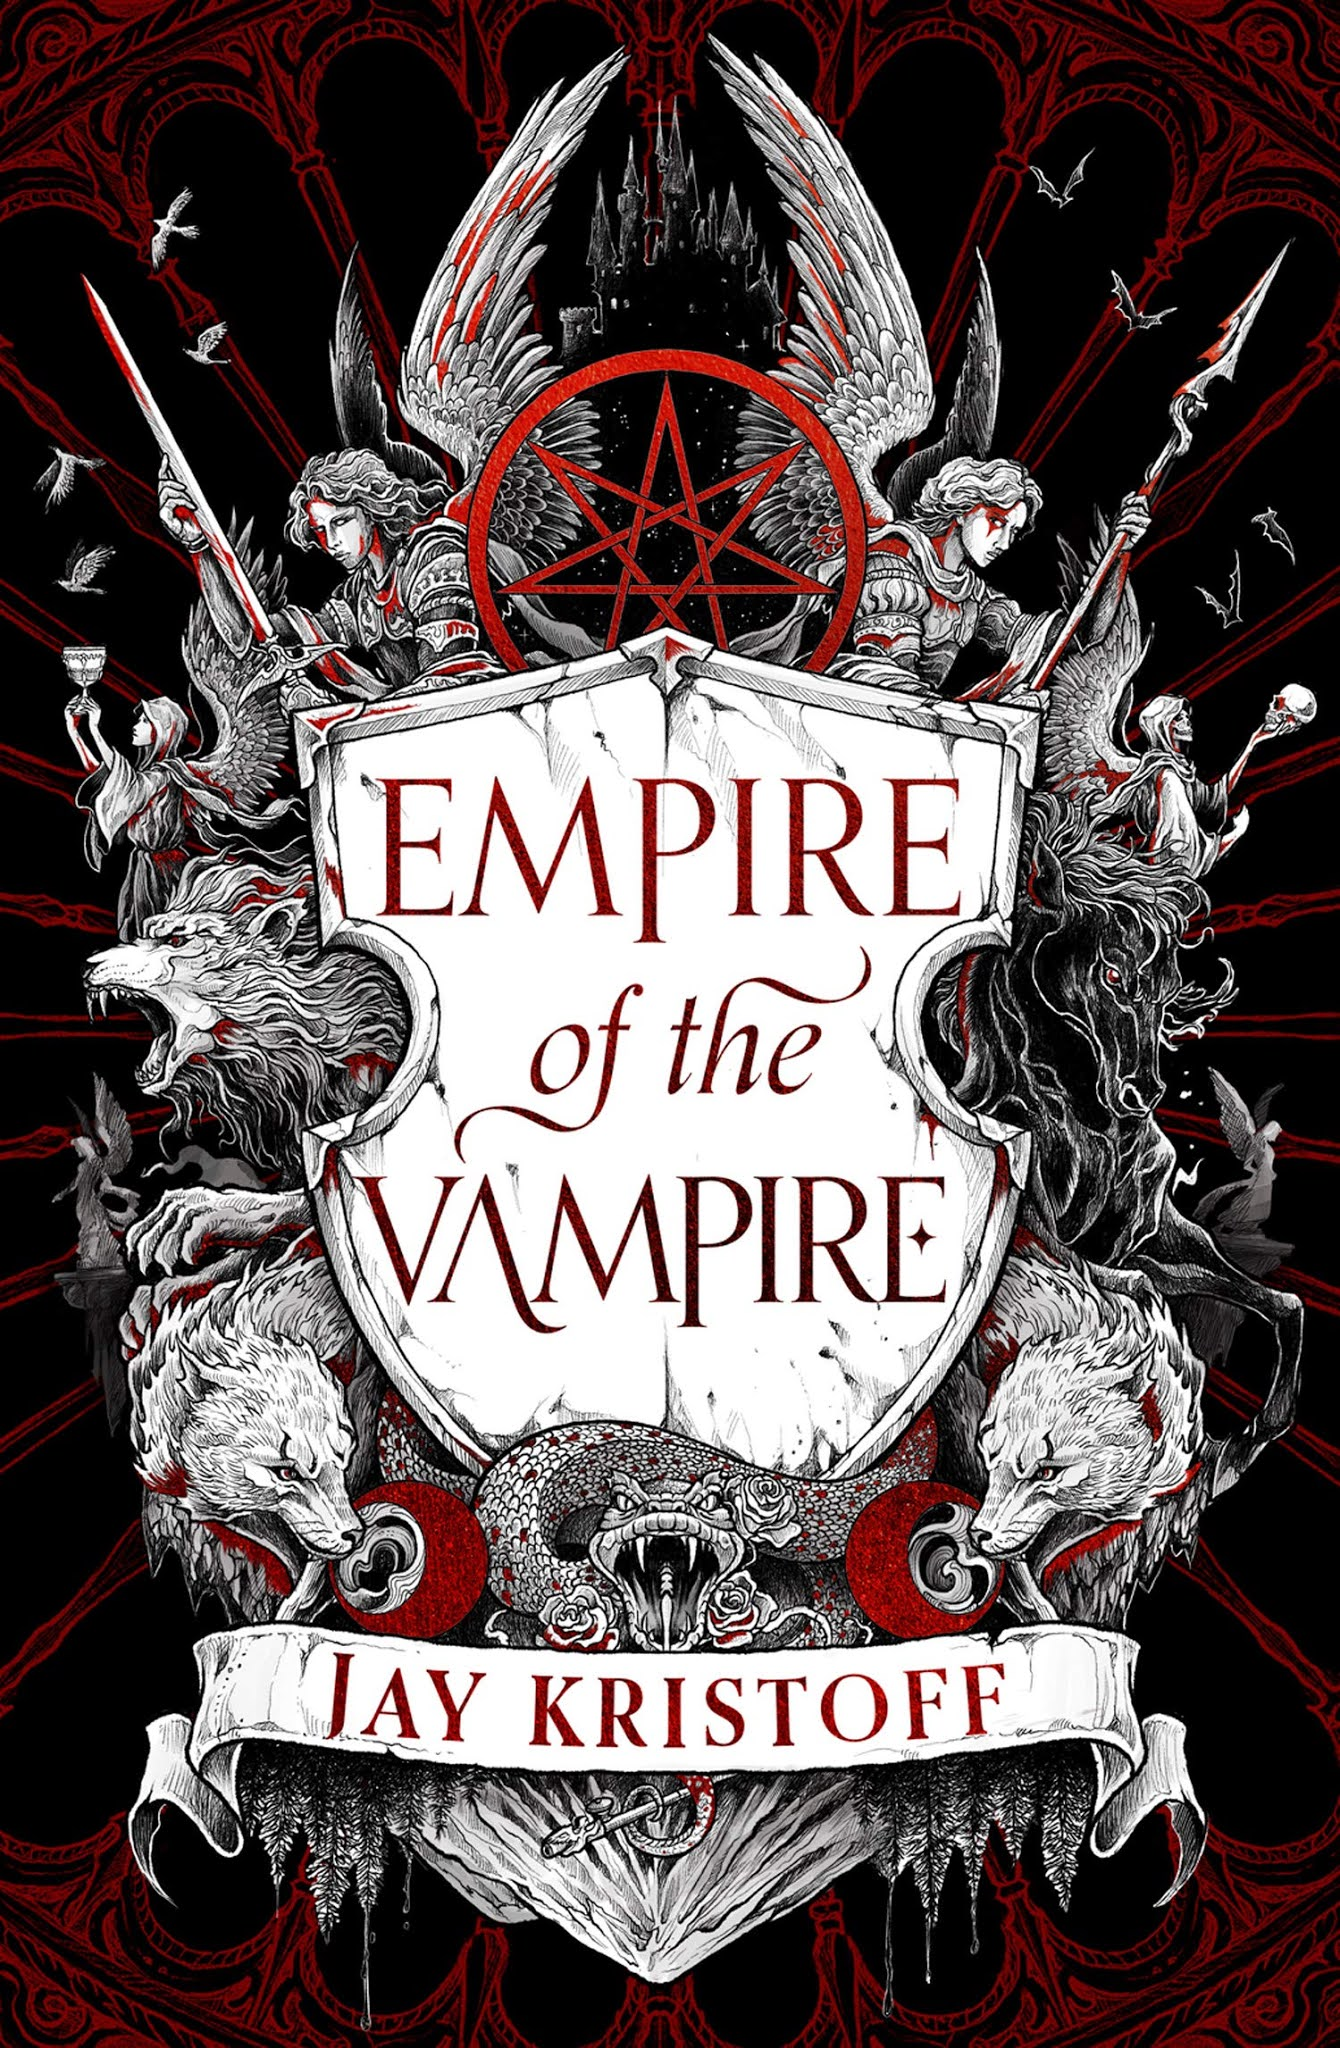 Empire of the Vampire by Jay Kristoff (UK Edition)